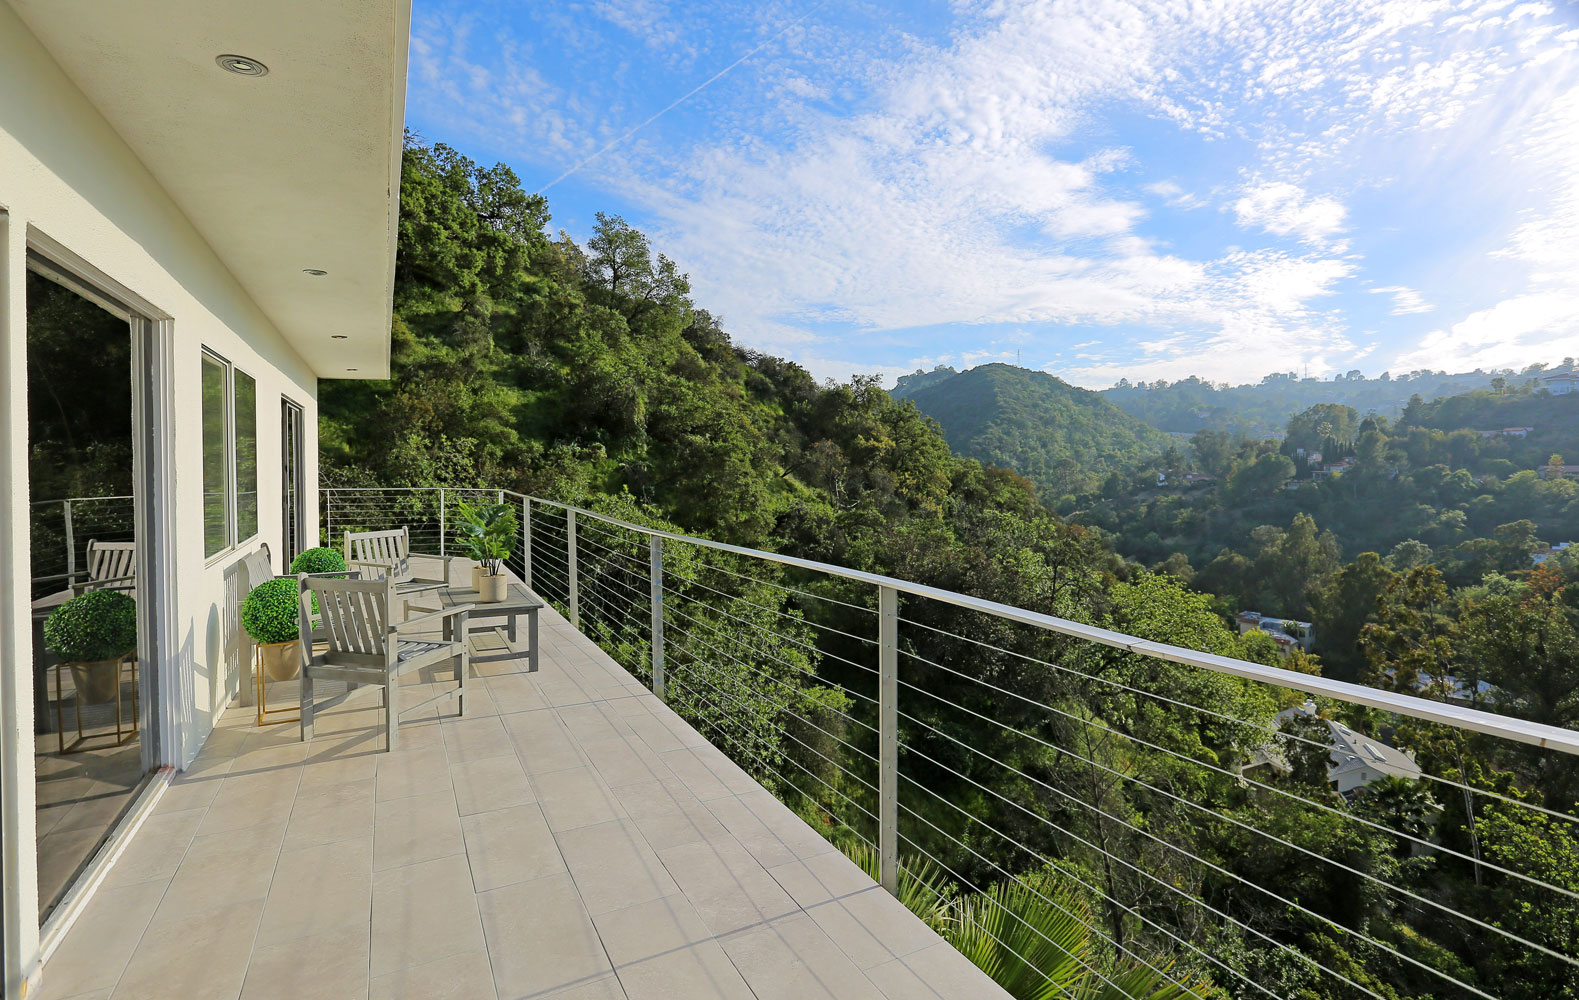 2509 Thames Street - Sunset Strip / Hollywood Hills, 2 bedrooms + 2 bathrooms$1,080,000